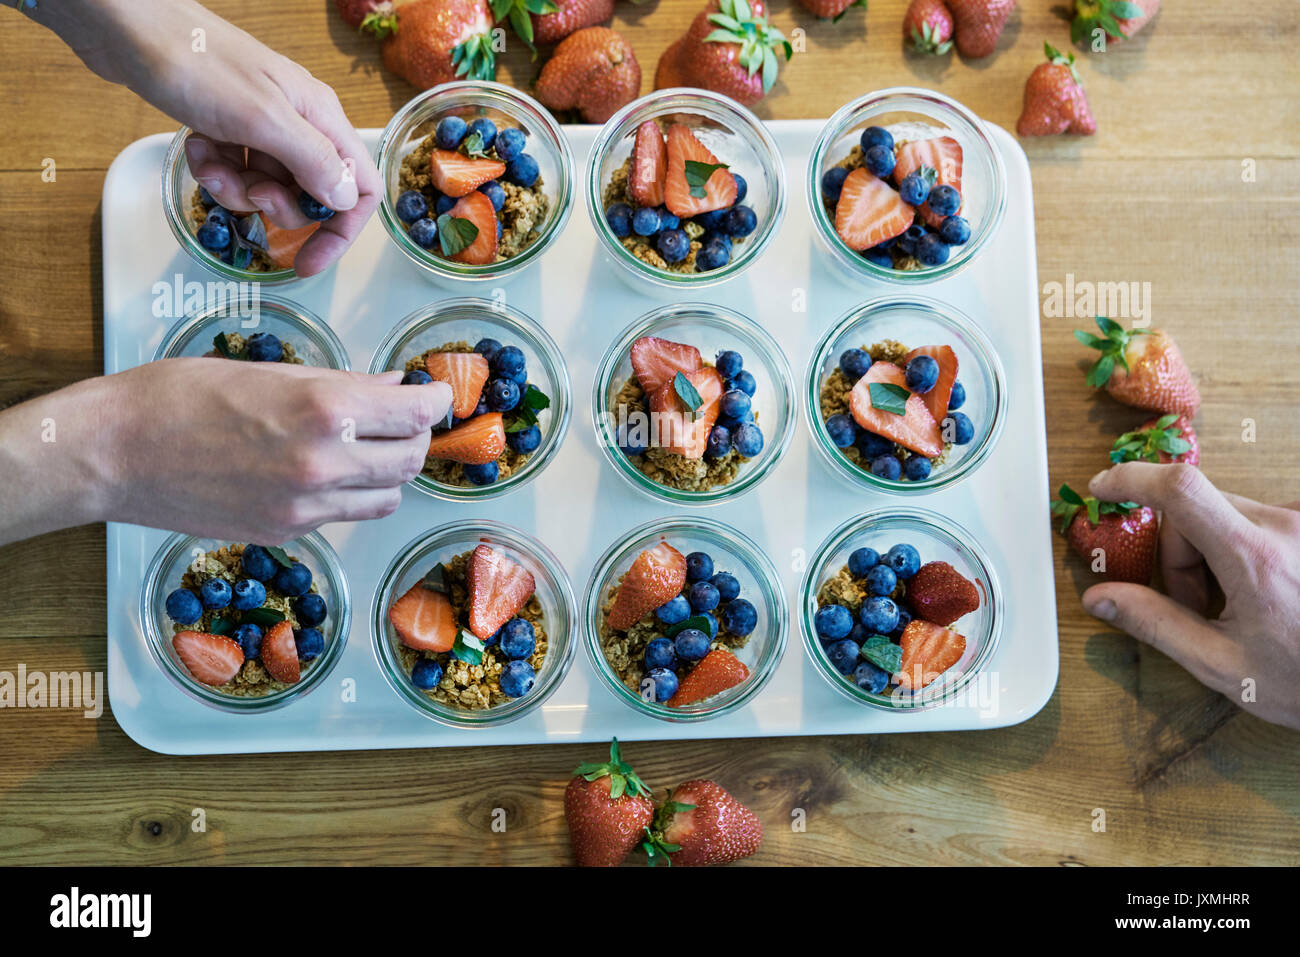 Two chefs preparing berry desserts, overhead view - Stock Image